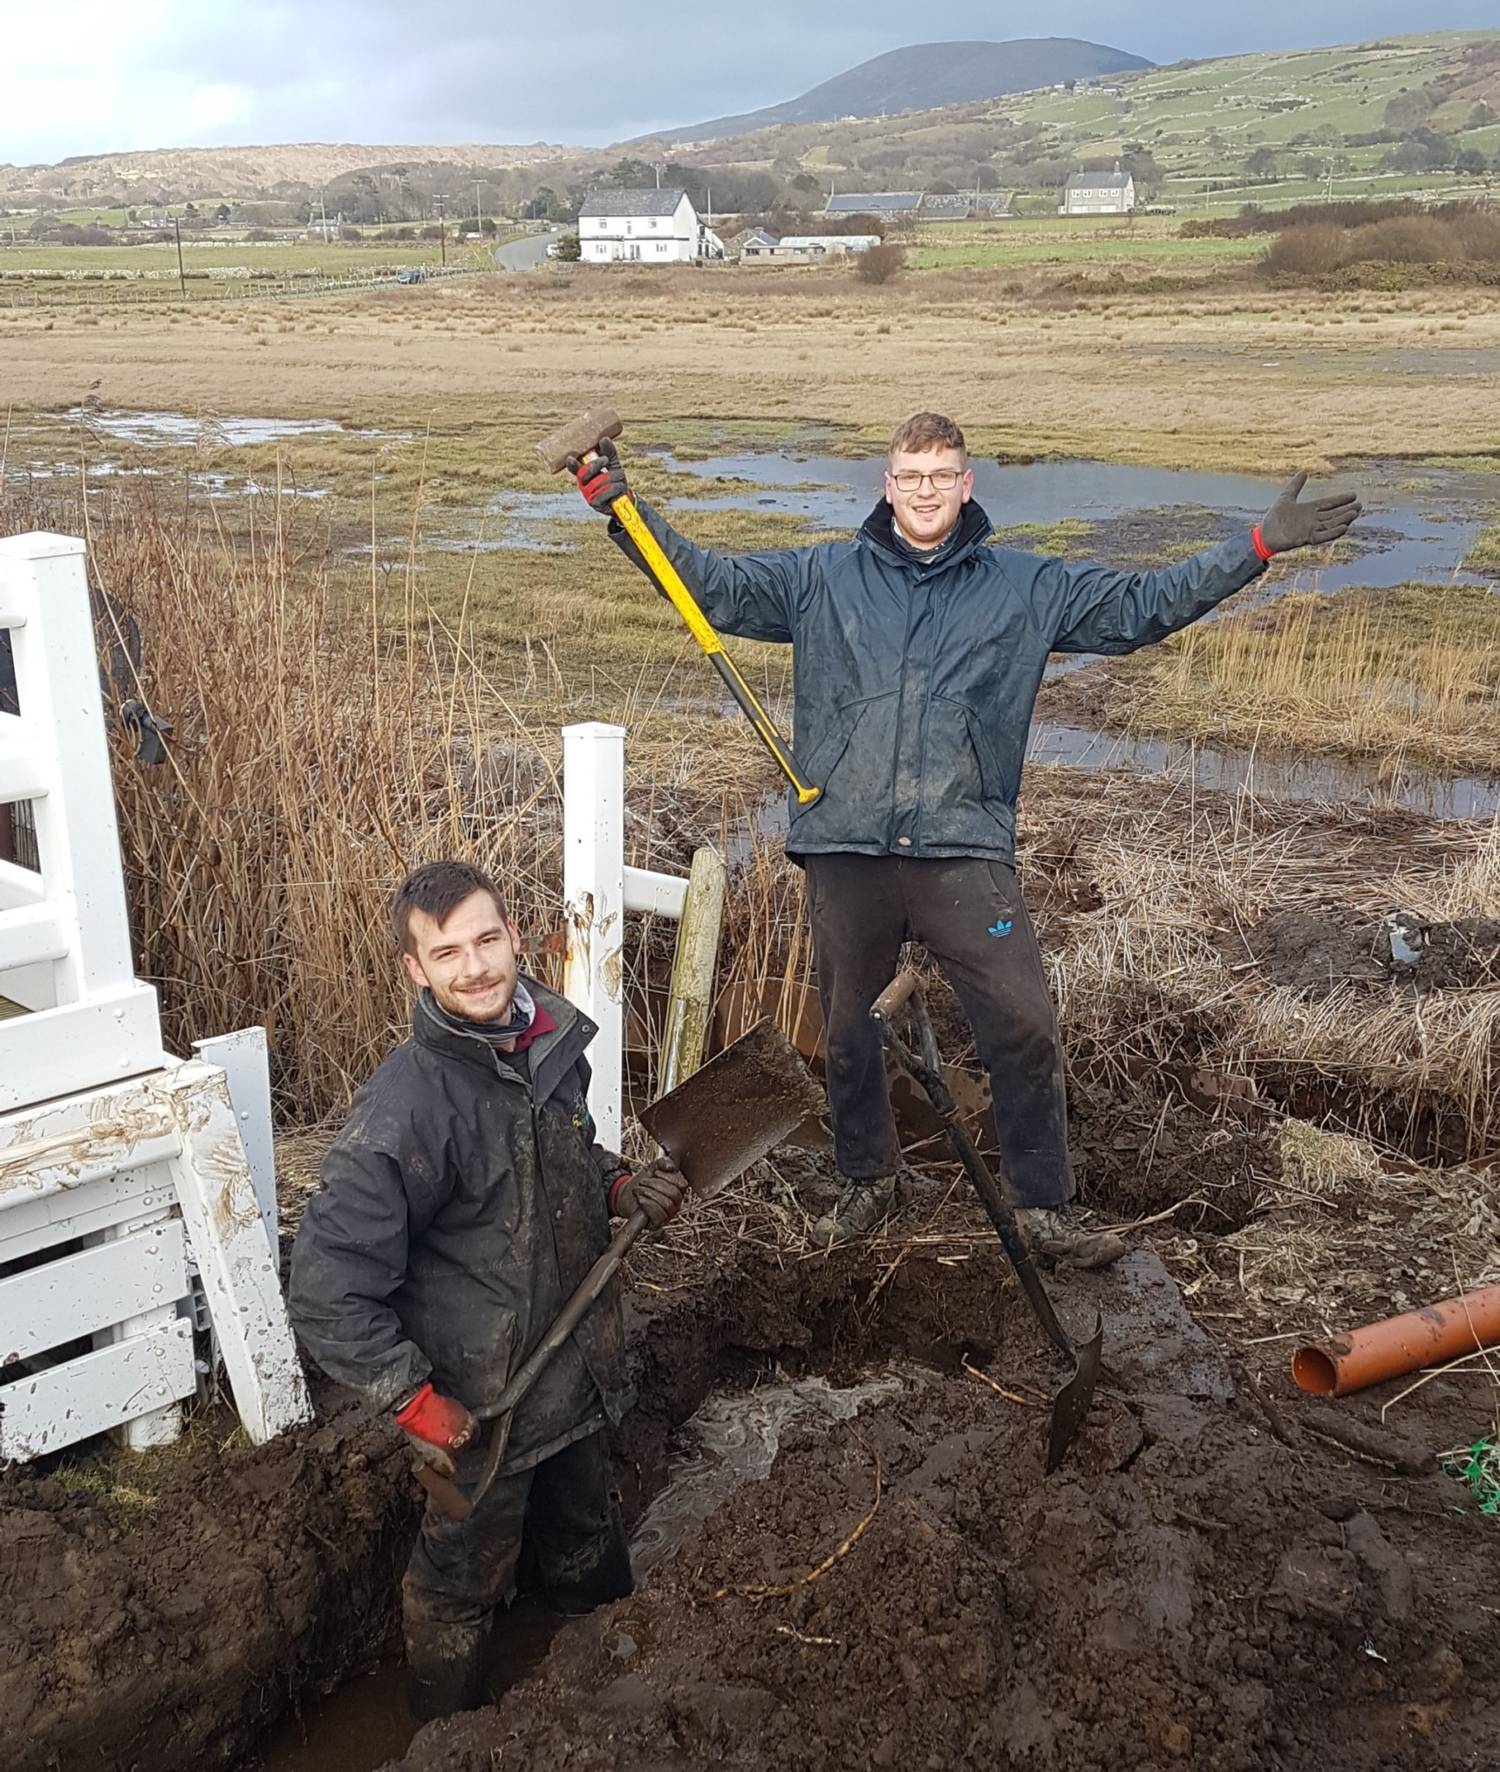 Ricky and george stood digging at Sunnysands caravan park, there are hills in the background and they are smiling.